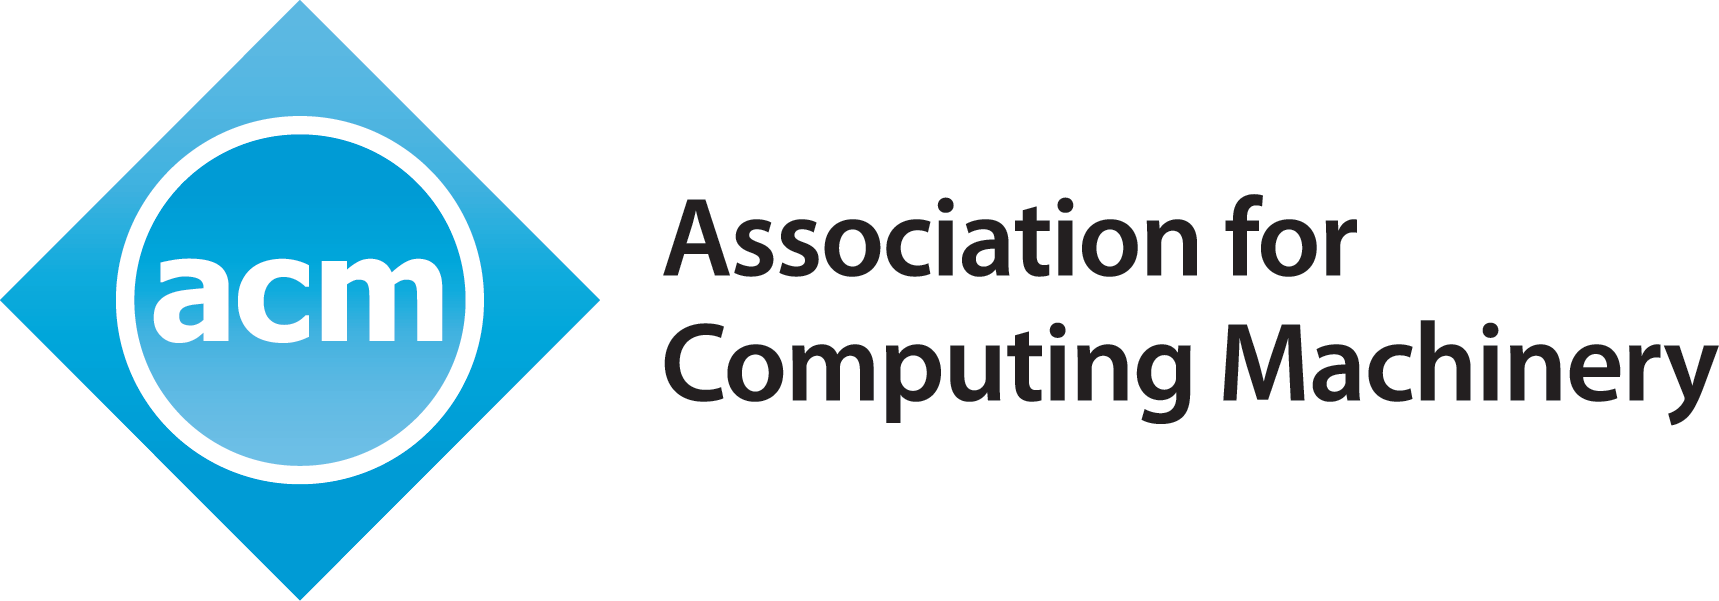 Association for Computing Machinery (ACM) logo